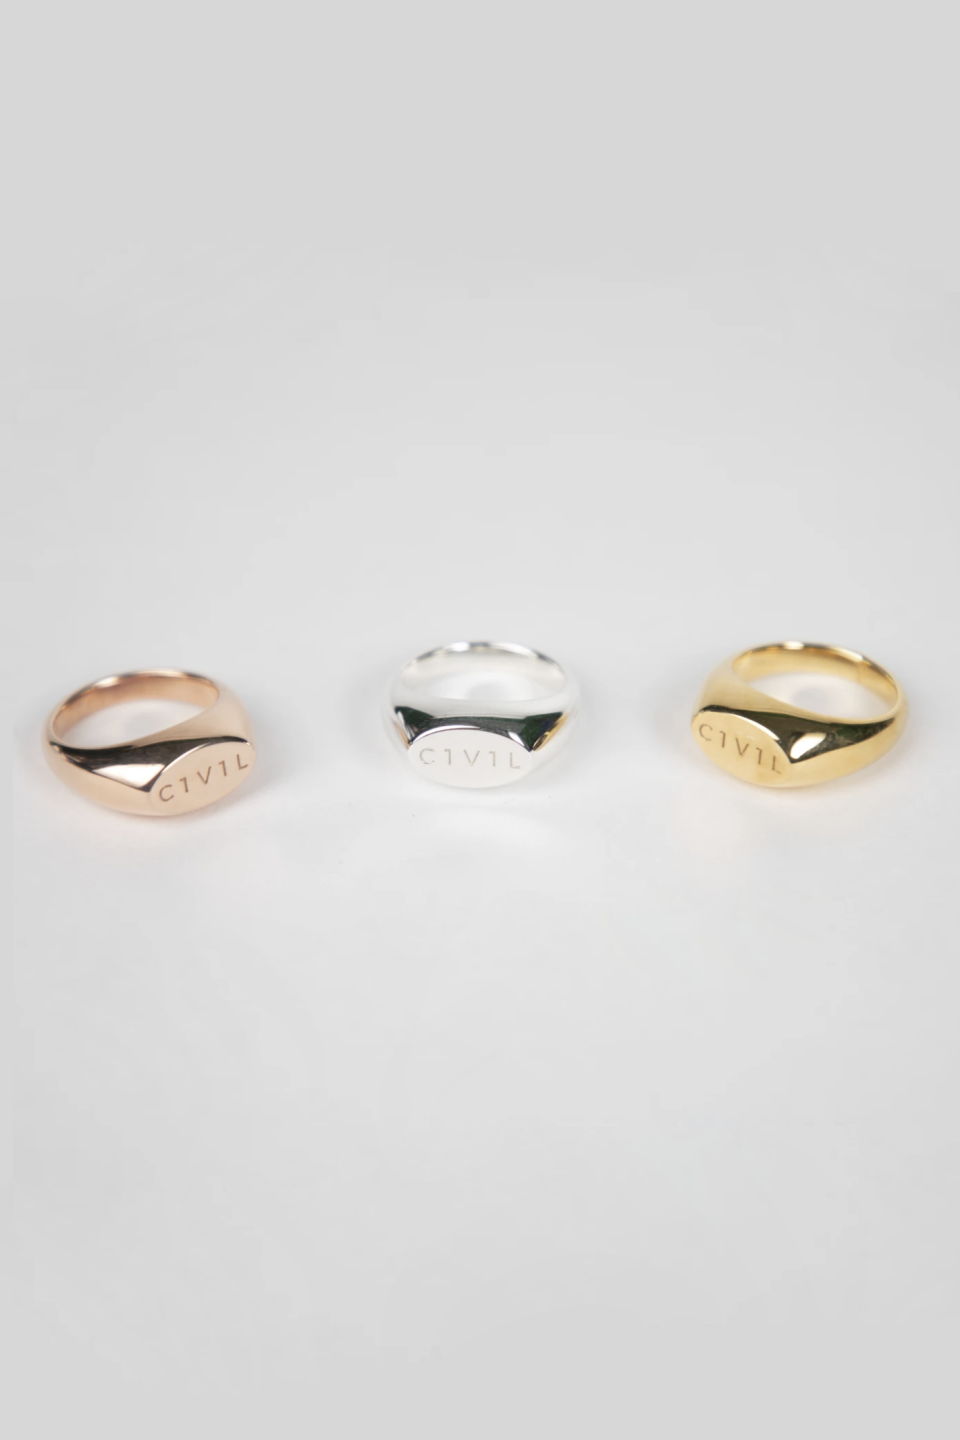 """<p><strong>Civil Jewelry </strong></p><p>civiljewelry.com</p><p><strong>$80.00</strong></p><p><a href=""""https://civiljewelry.com/collections/civil/products/small-signet-ring"""" rel=""""nofollow noopener"""" target=""""_blank"""" data-ylk=""""slk:SHOP IT"""" class=""""link rapid-noclick-resp"""">SHOP IT</a></p><p>For the jewelry lover, there's nothing like receiving a new piece for her collection. This signet ring bears the label's name on it and can easily be incorporated with other items already in her jewelry box. The company gives 20 percent of its profits back to underrepresented founders and entrepreneurs. </p>"""